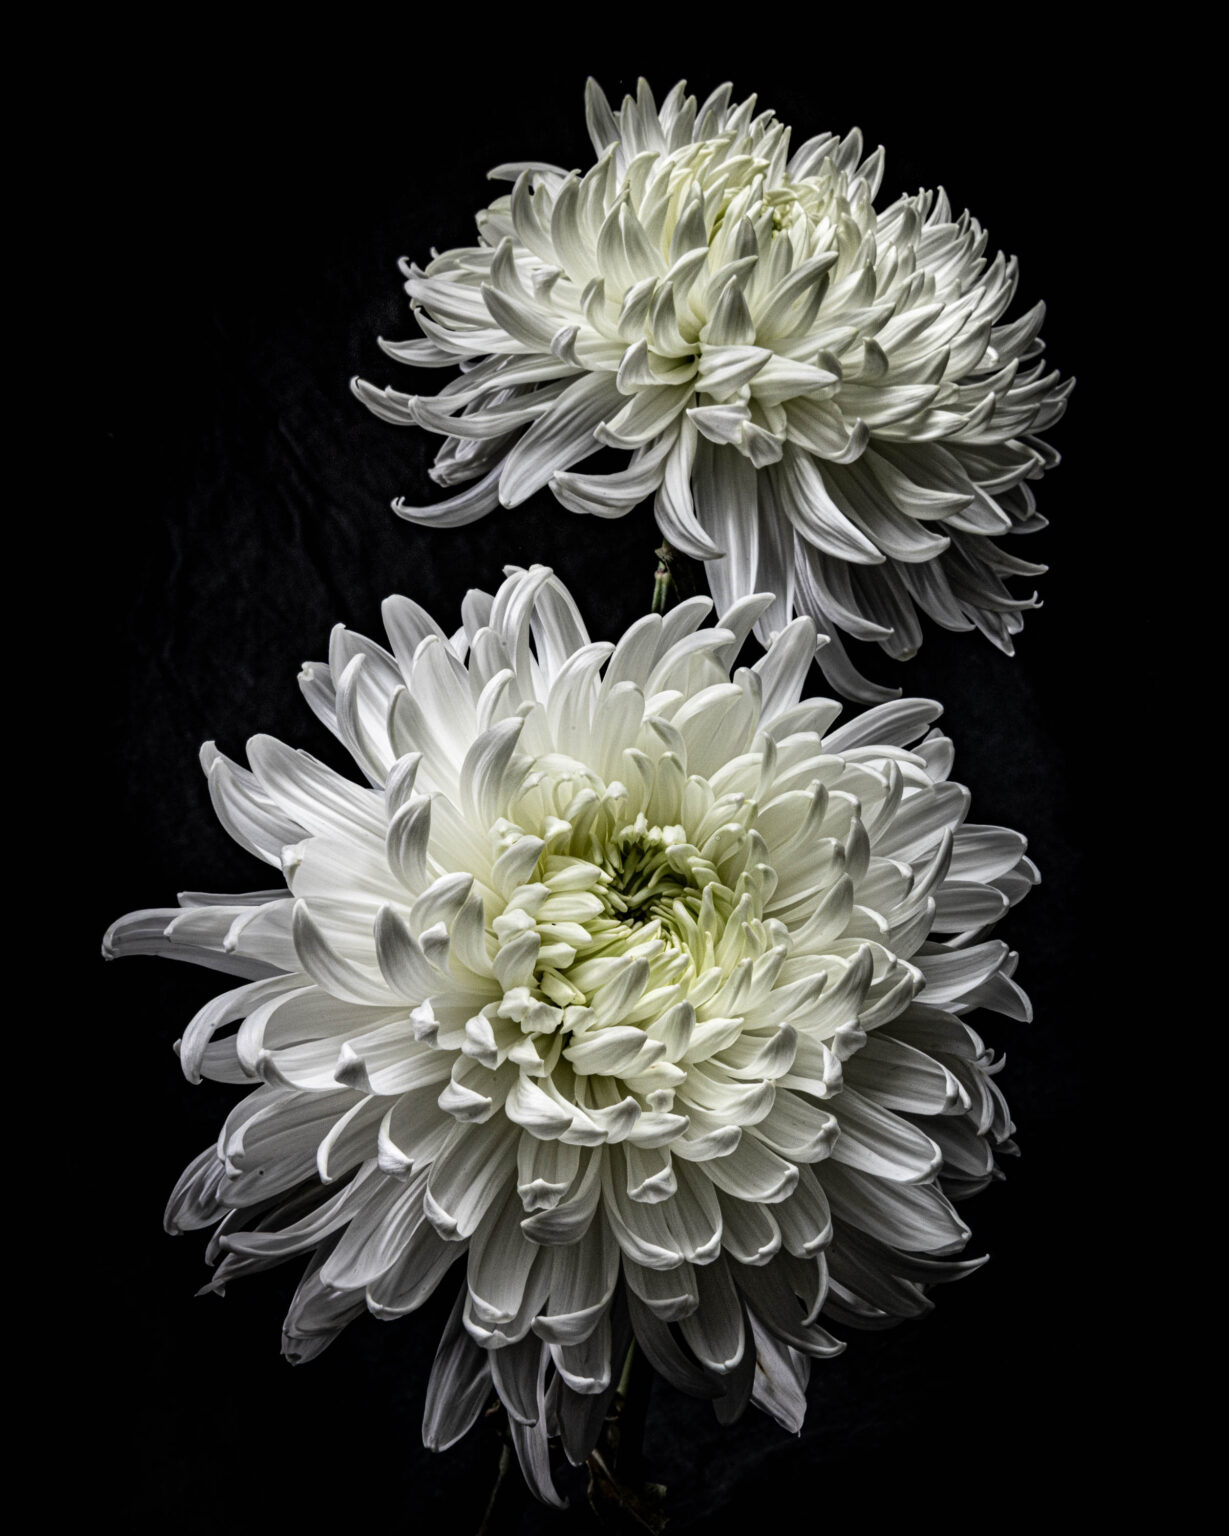 Photograph of two white Chrysanthemums